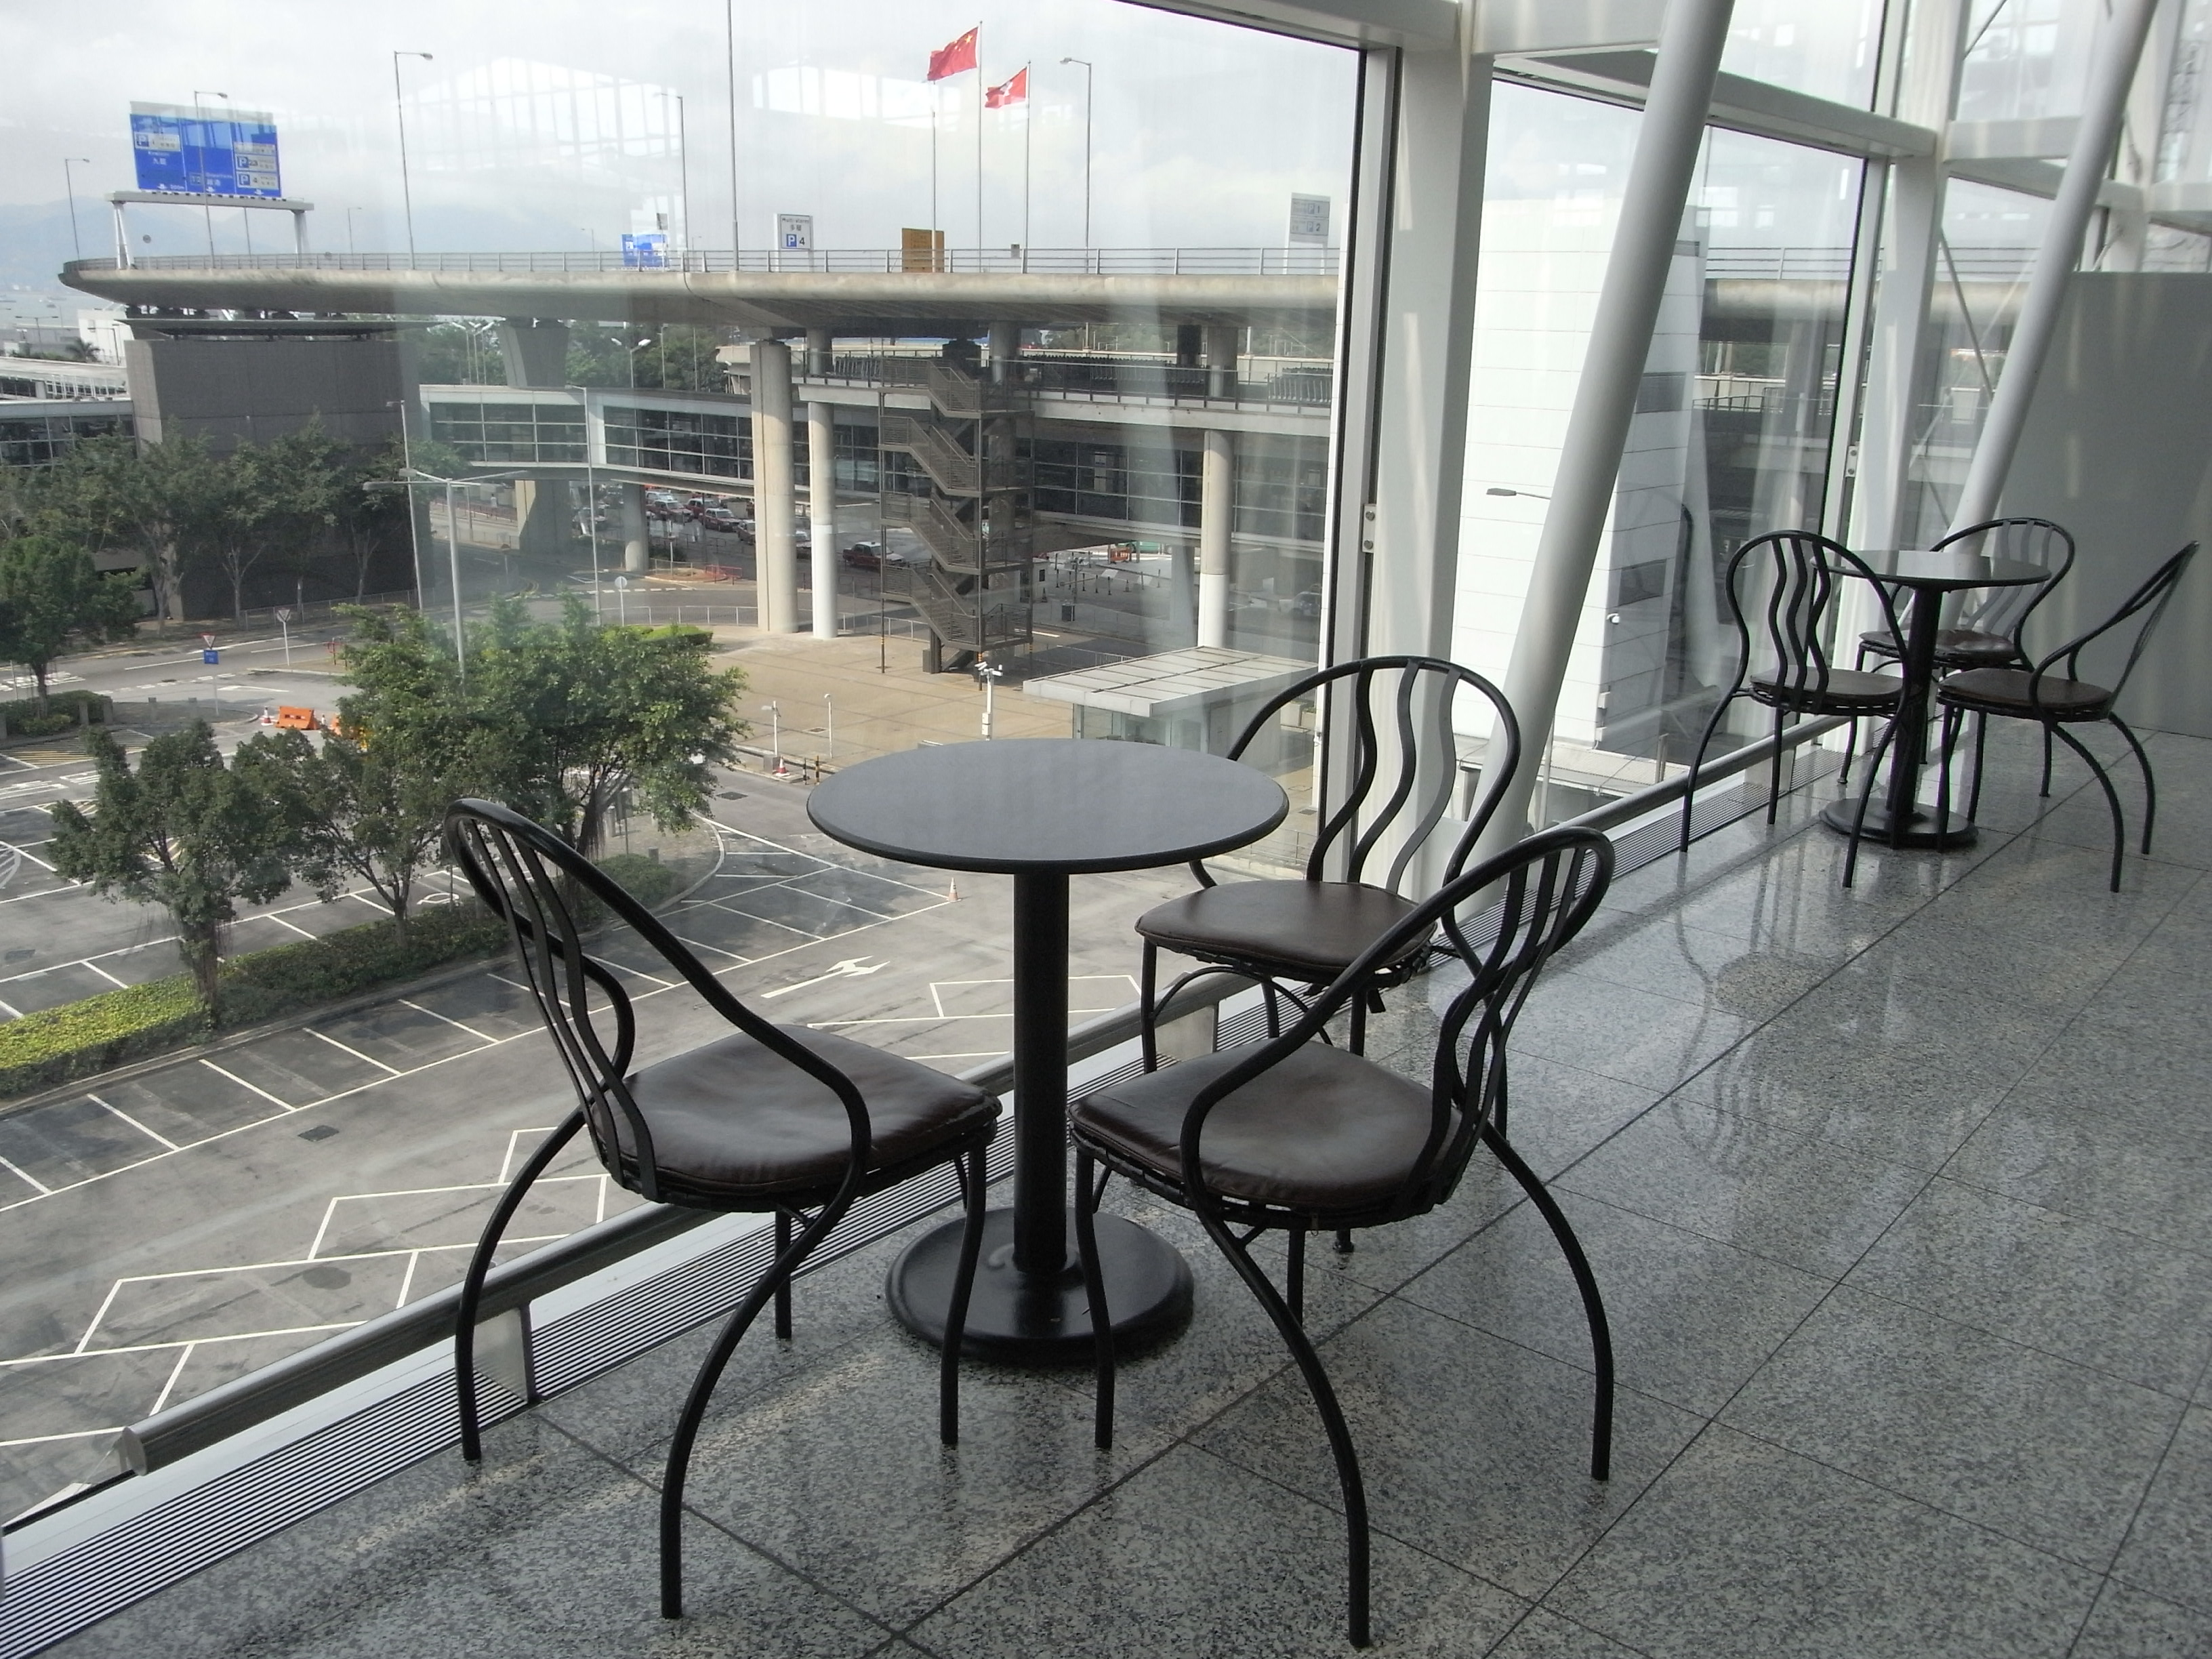 File:HK Airport Terminal 1 Pacific Coffee Restaurant Table Chairs Glass  Wall View Chek Lap